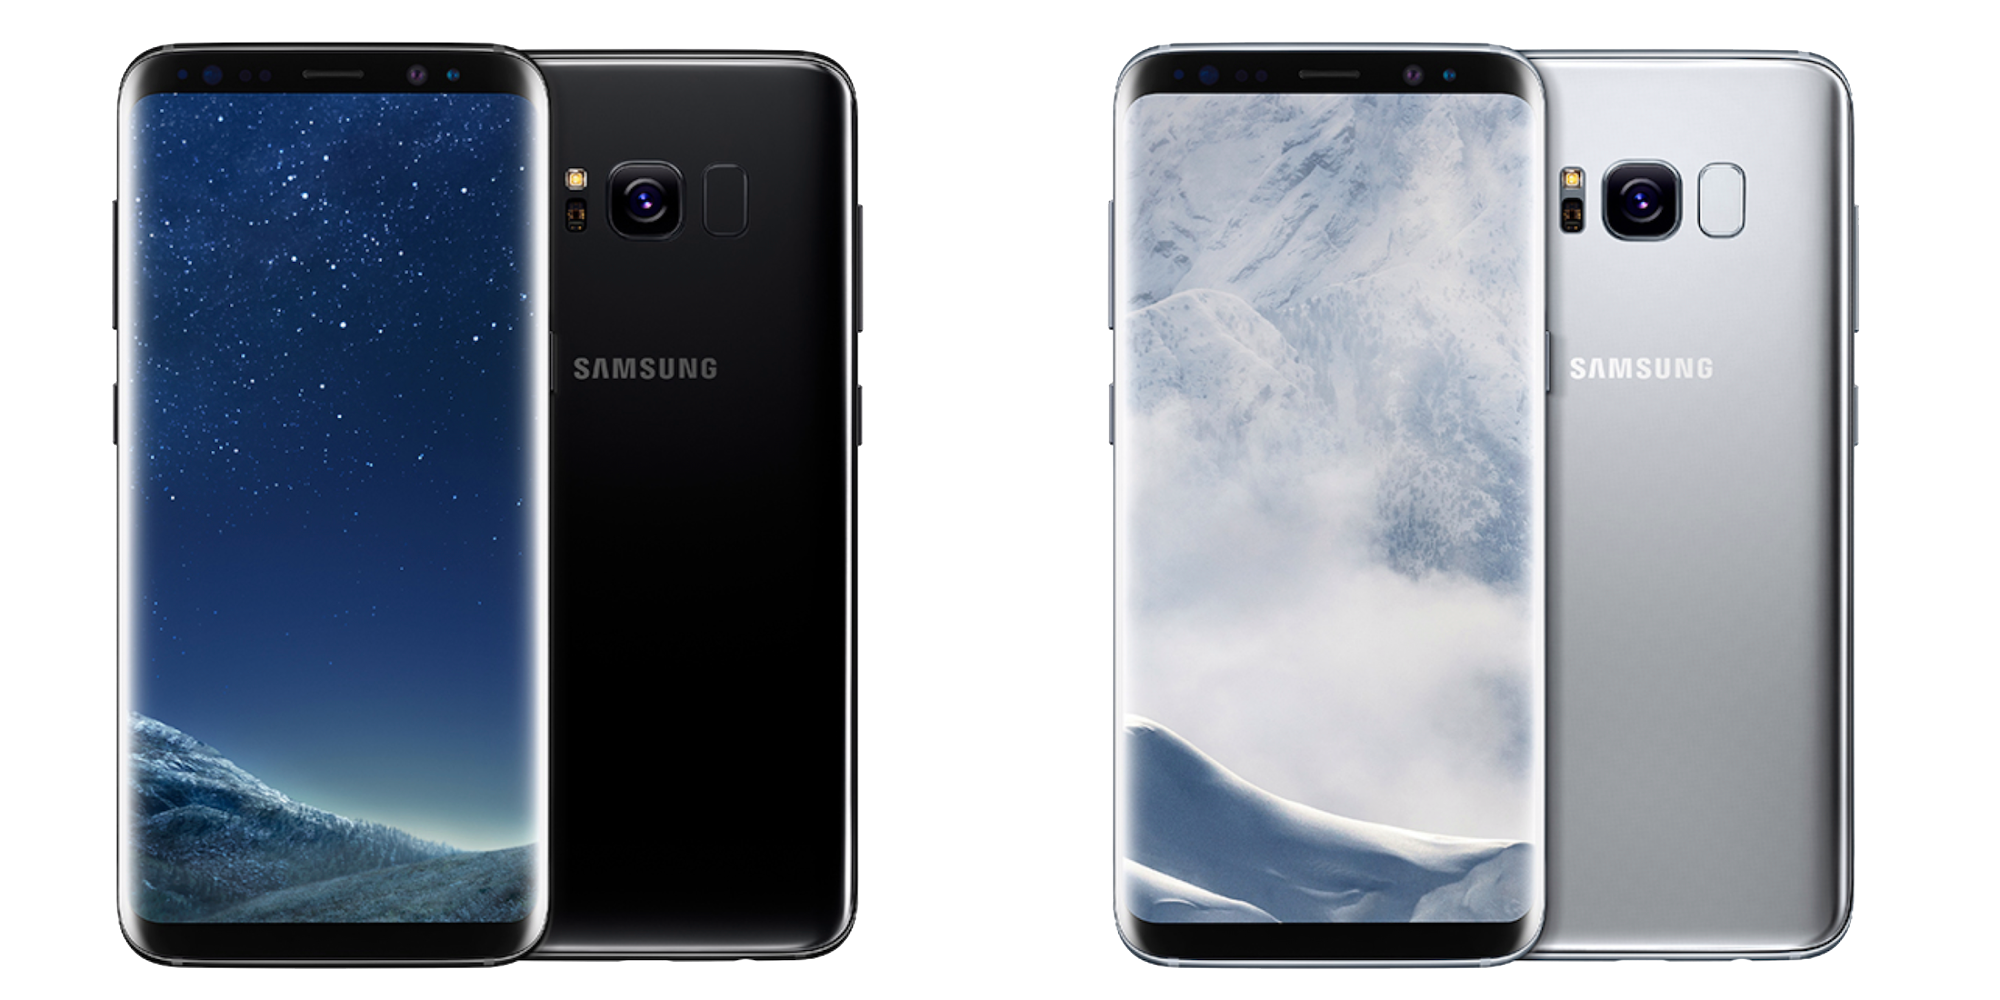 Galaxy s8 clipart graphic free stock Galaxy S8 Plus Mobile Png Transparent Background graphic free stock